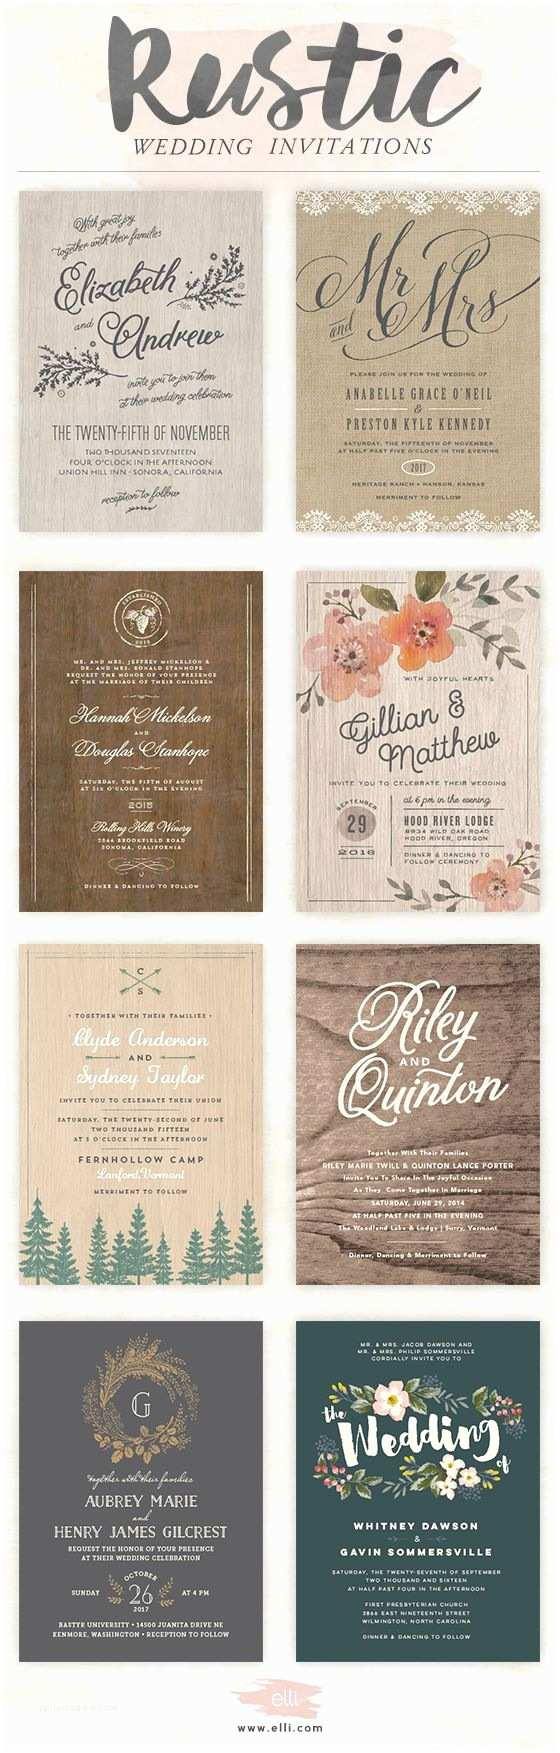 Elli Wedding Invitations 1000 Ideas About Rustic Wedding Showers On Pinterest